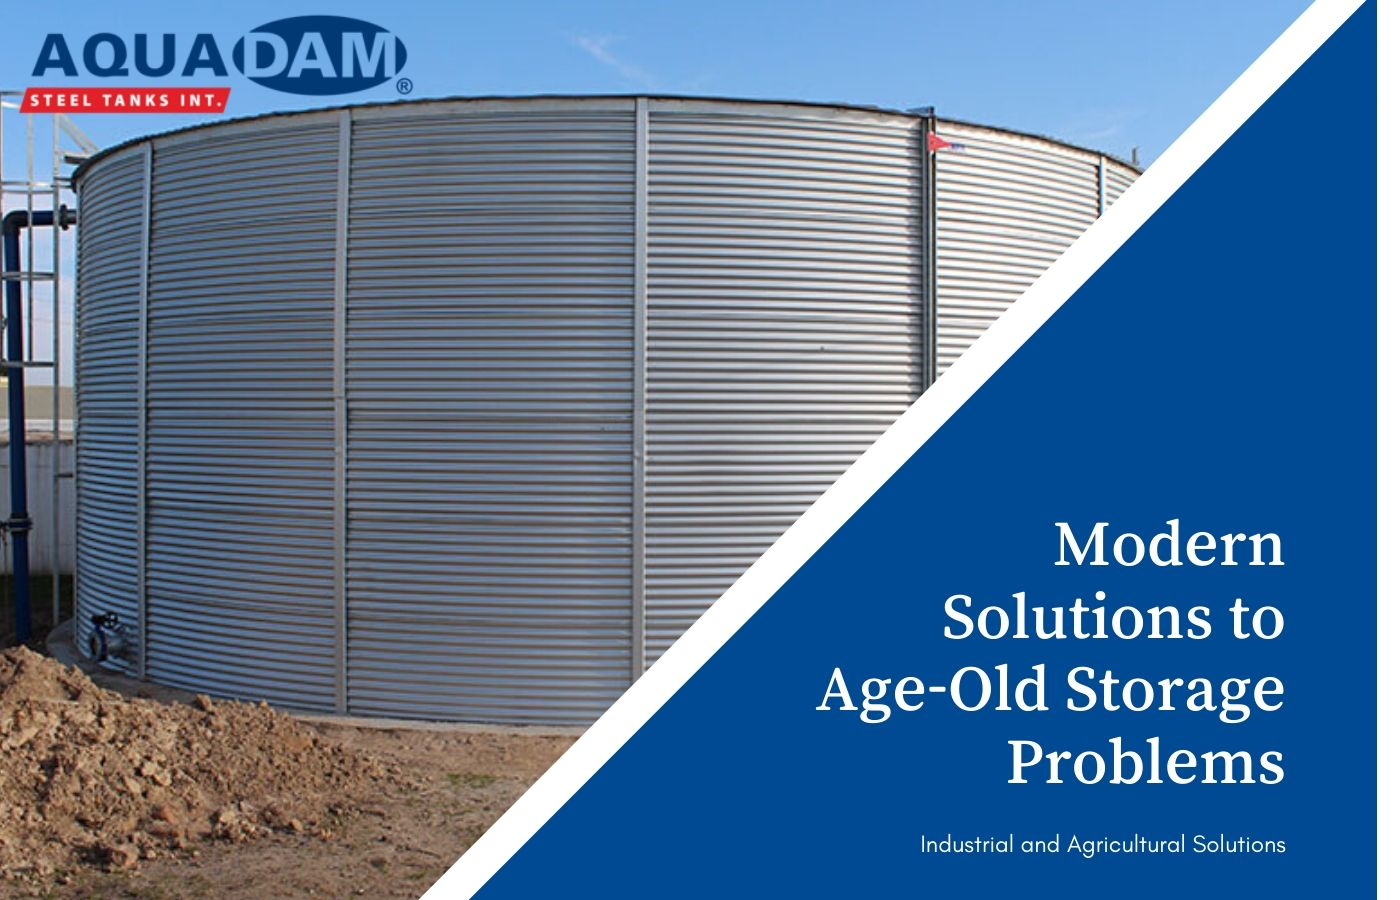 Modern Solutions to Age-Old Storage Problems